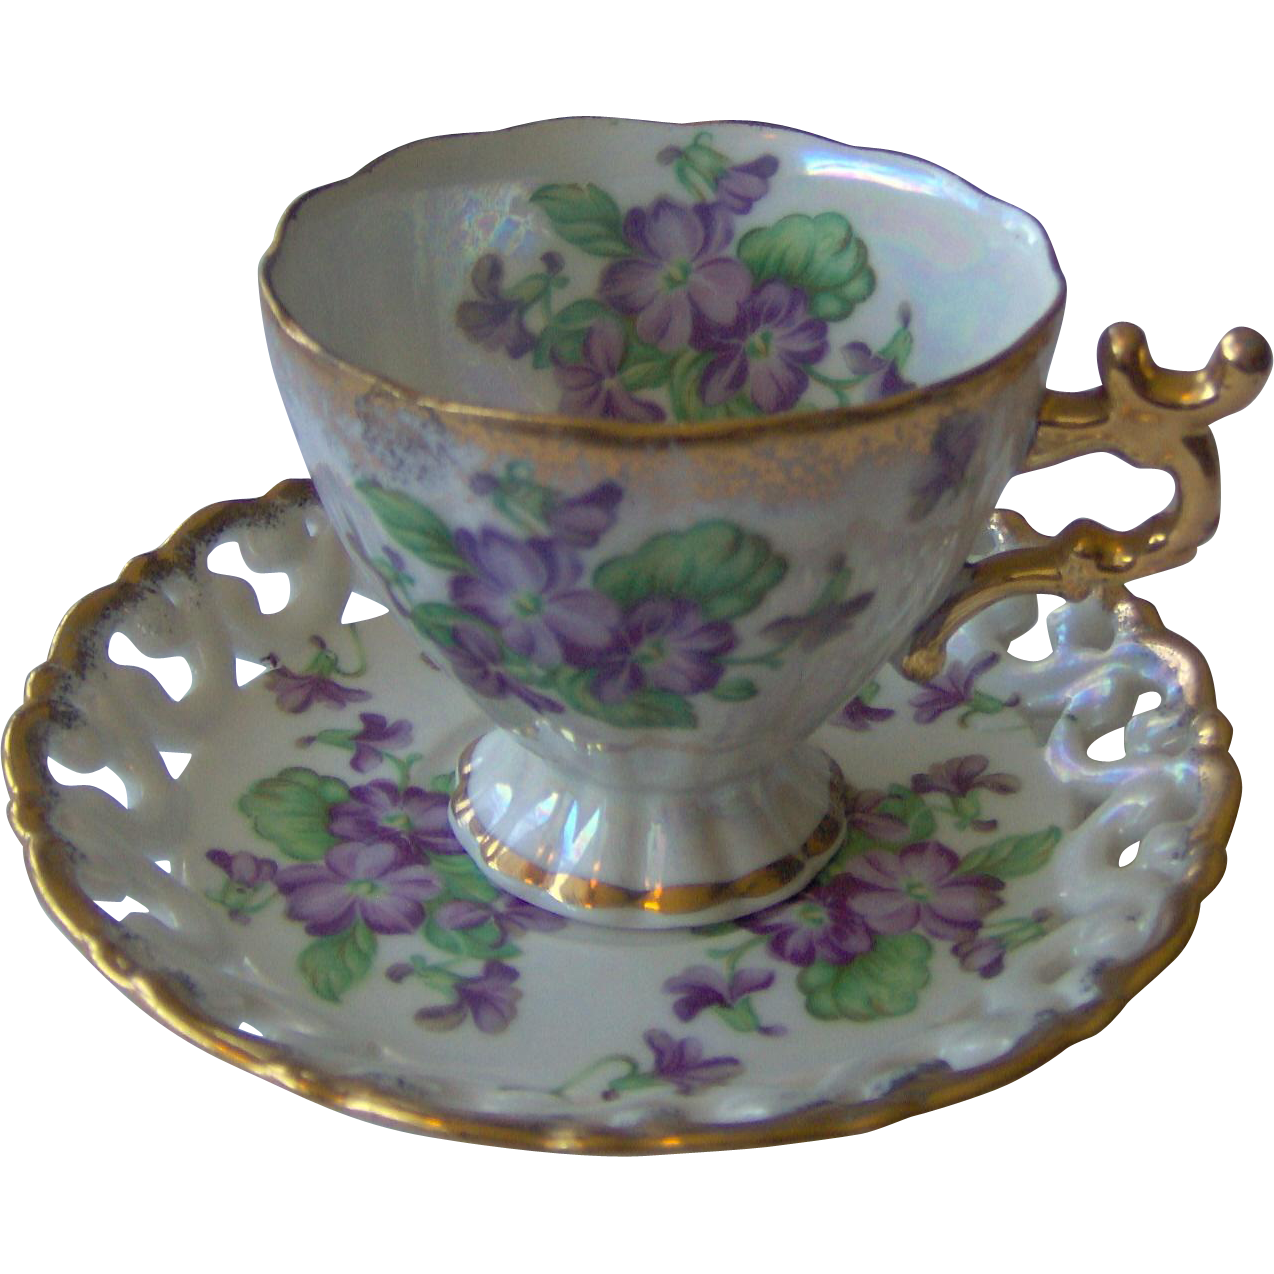 Floral Cup and Saucer with purple flowers